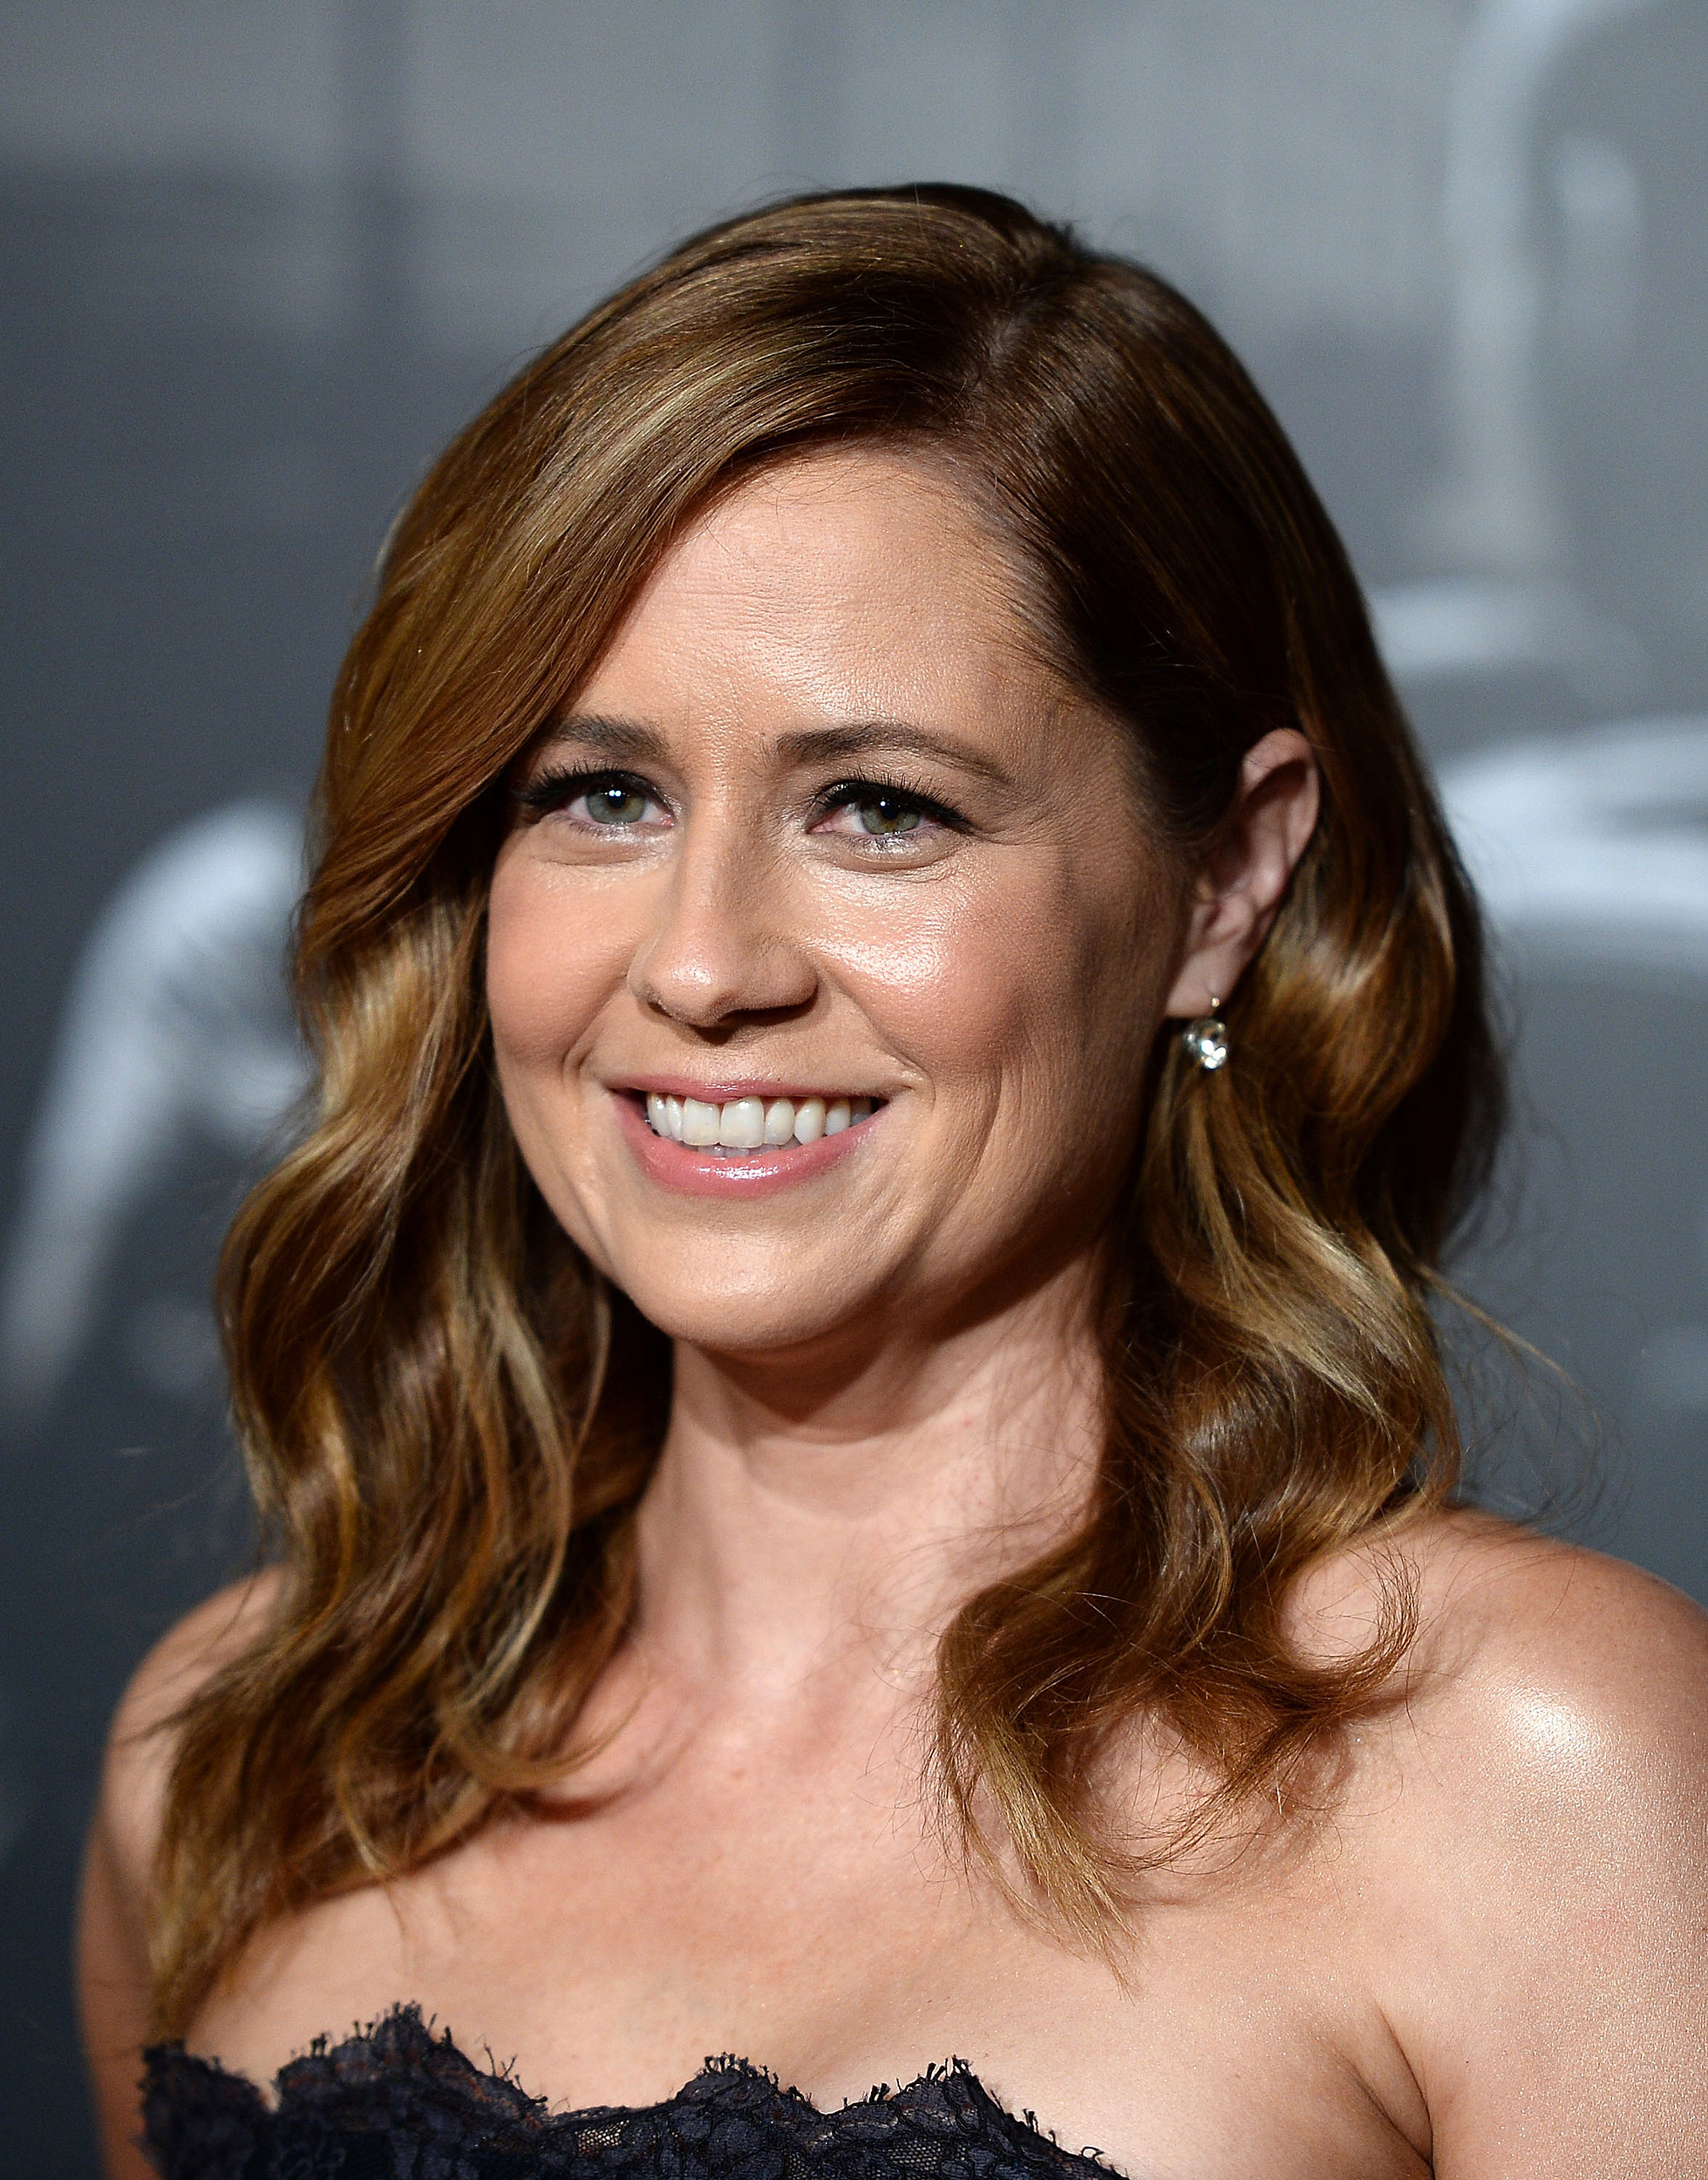 Jenna Fischer From The Office Coming To Mn To Shoot Movie